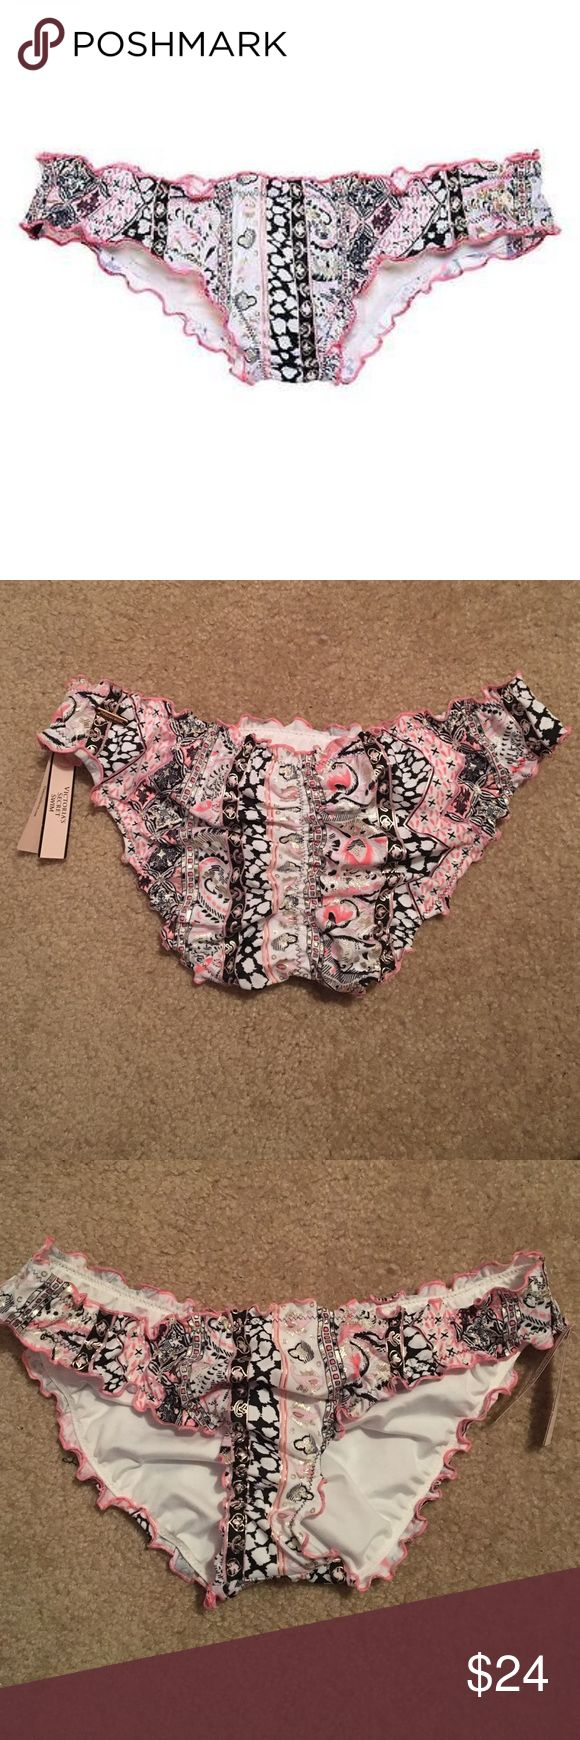 Victoria's Secret Ruffle Cheeky Bikini Bottom Cheeky bathing suit bottom with ruffles along the edges. Lower cut, looks very good on. Light pink and black paisley print with a little by of gold shimmery details. New, never worn! Will come in original packaging! This item is no longer sold in stores or online. Victoria's Secret Swim Bikinis